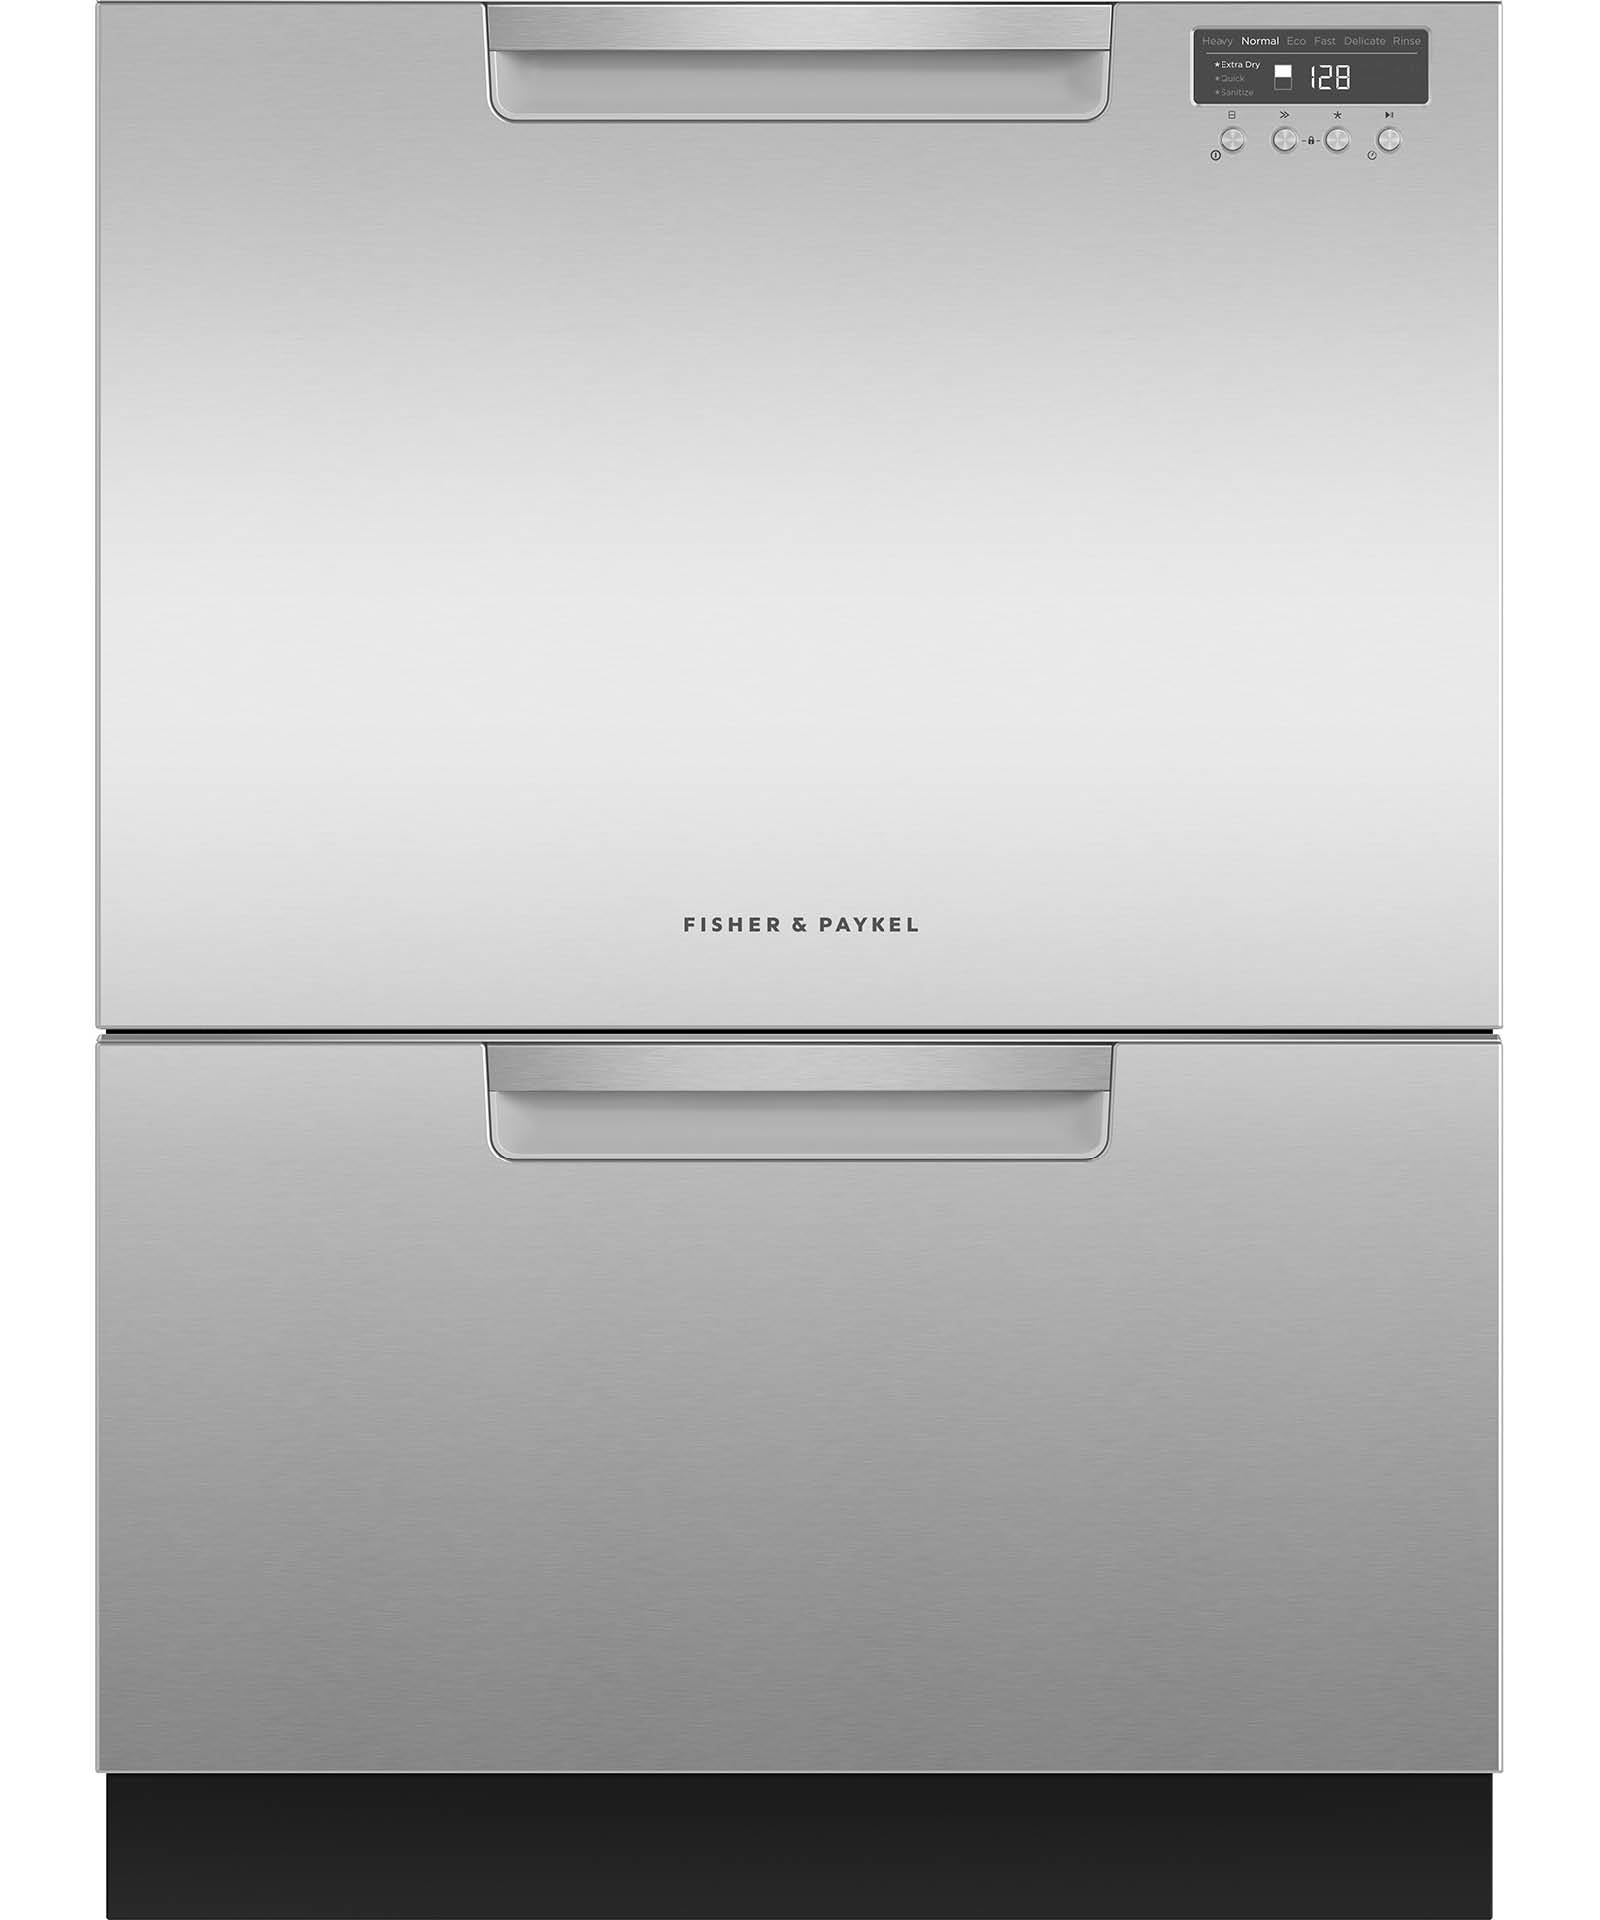 DD24DCHTX9_N   Tall Double DishDrawer™ Dishwasher Incl Sanitize, Extra Dry,  Full Flex Racking